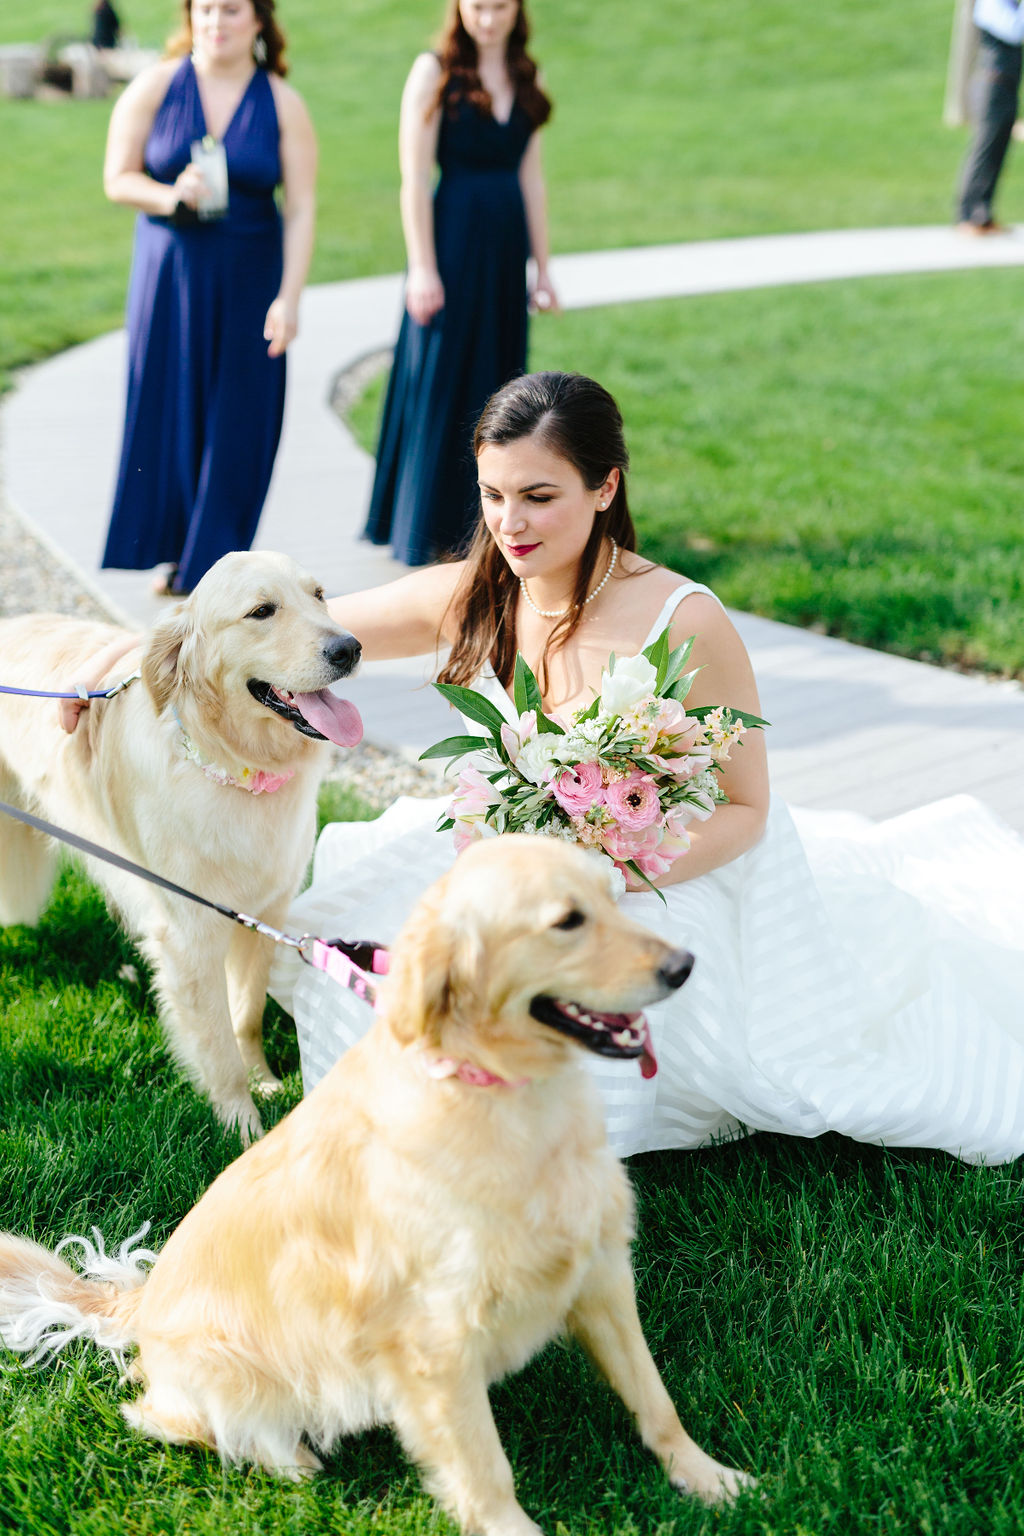 Bride with her dogs - golden retrievers - Preppy spring wedding at Zingerman's Cornman Farms - Leah E. Moss Designs - photo by Katie Grace Photography